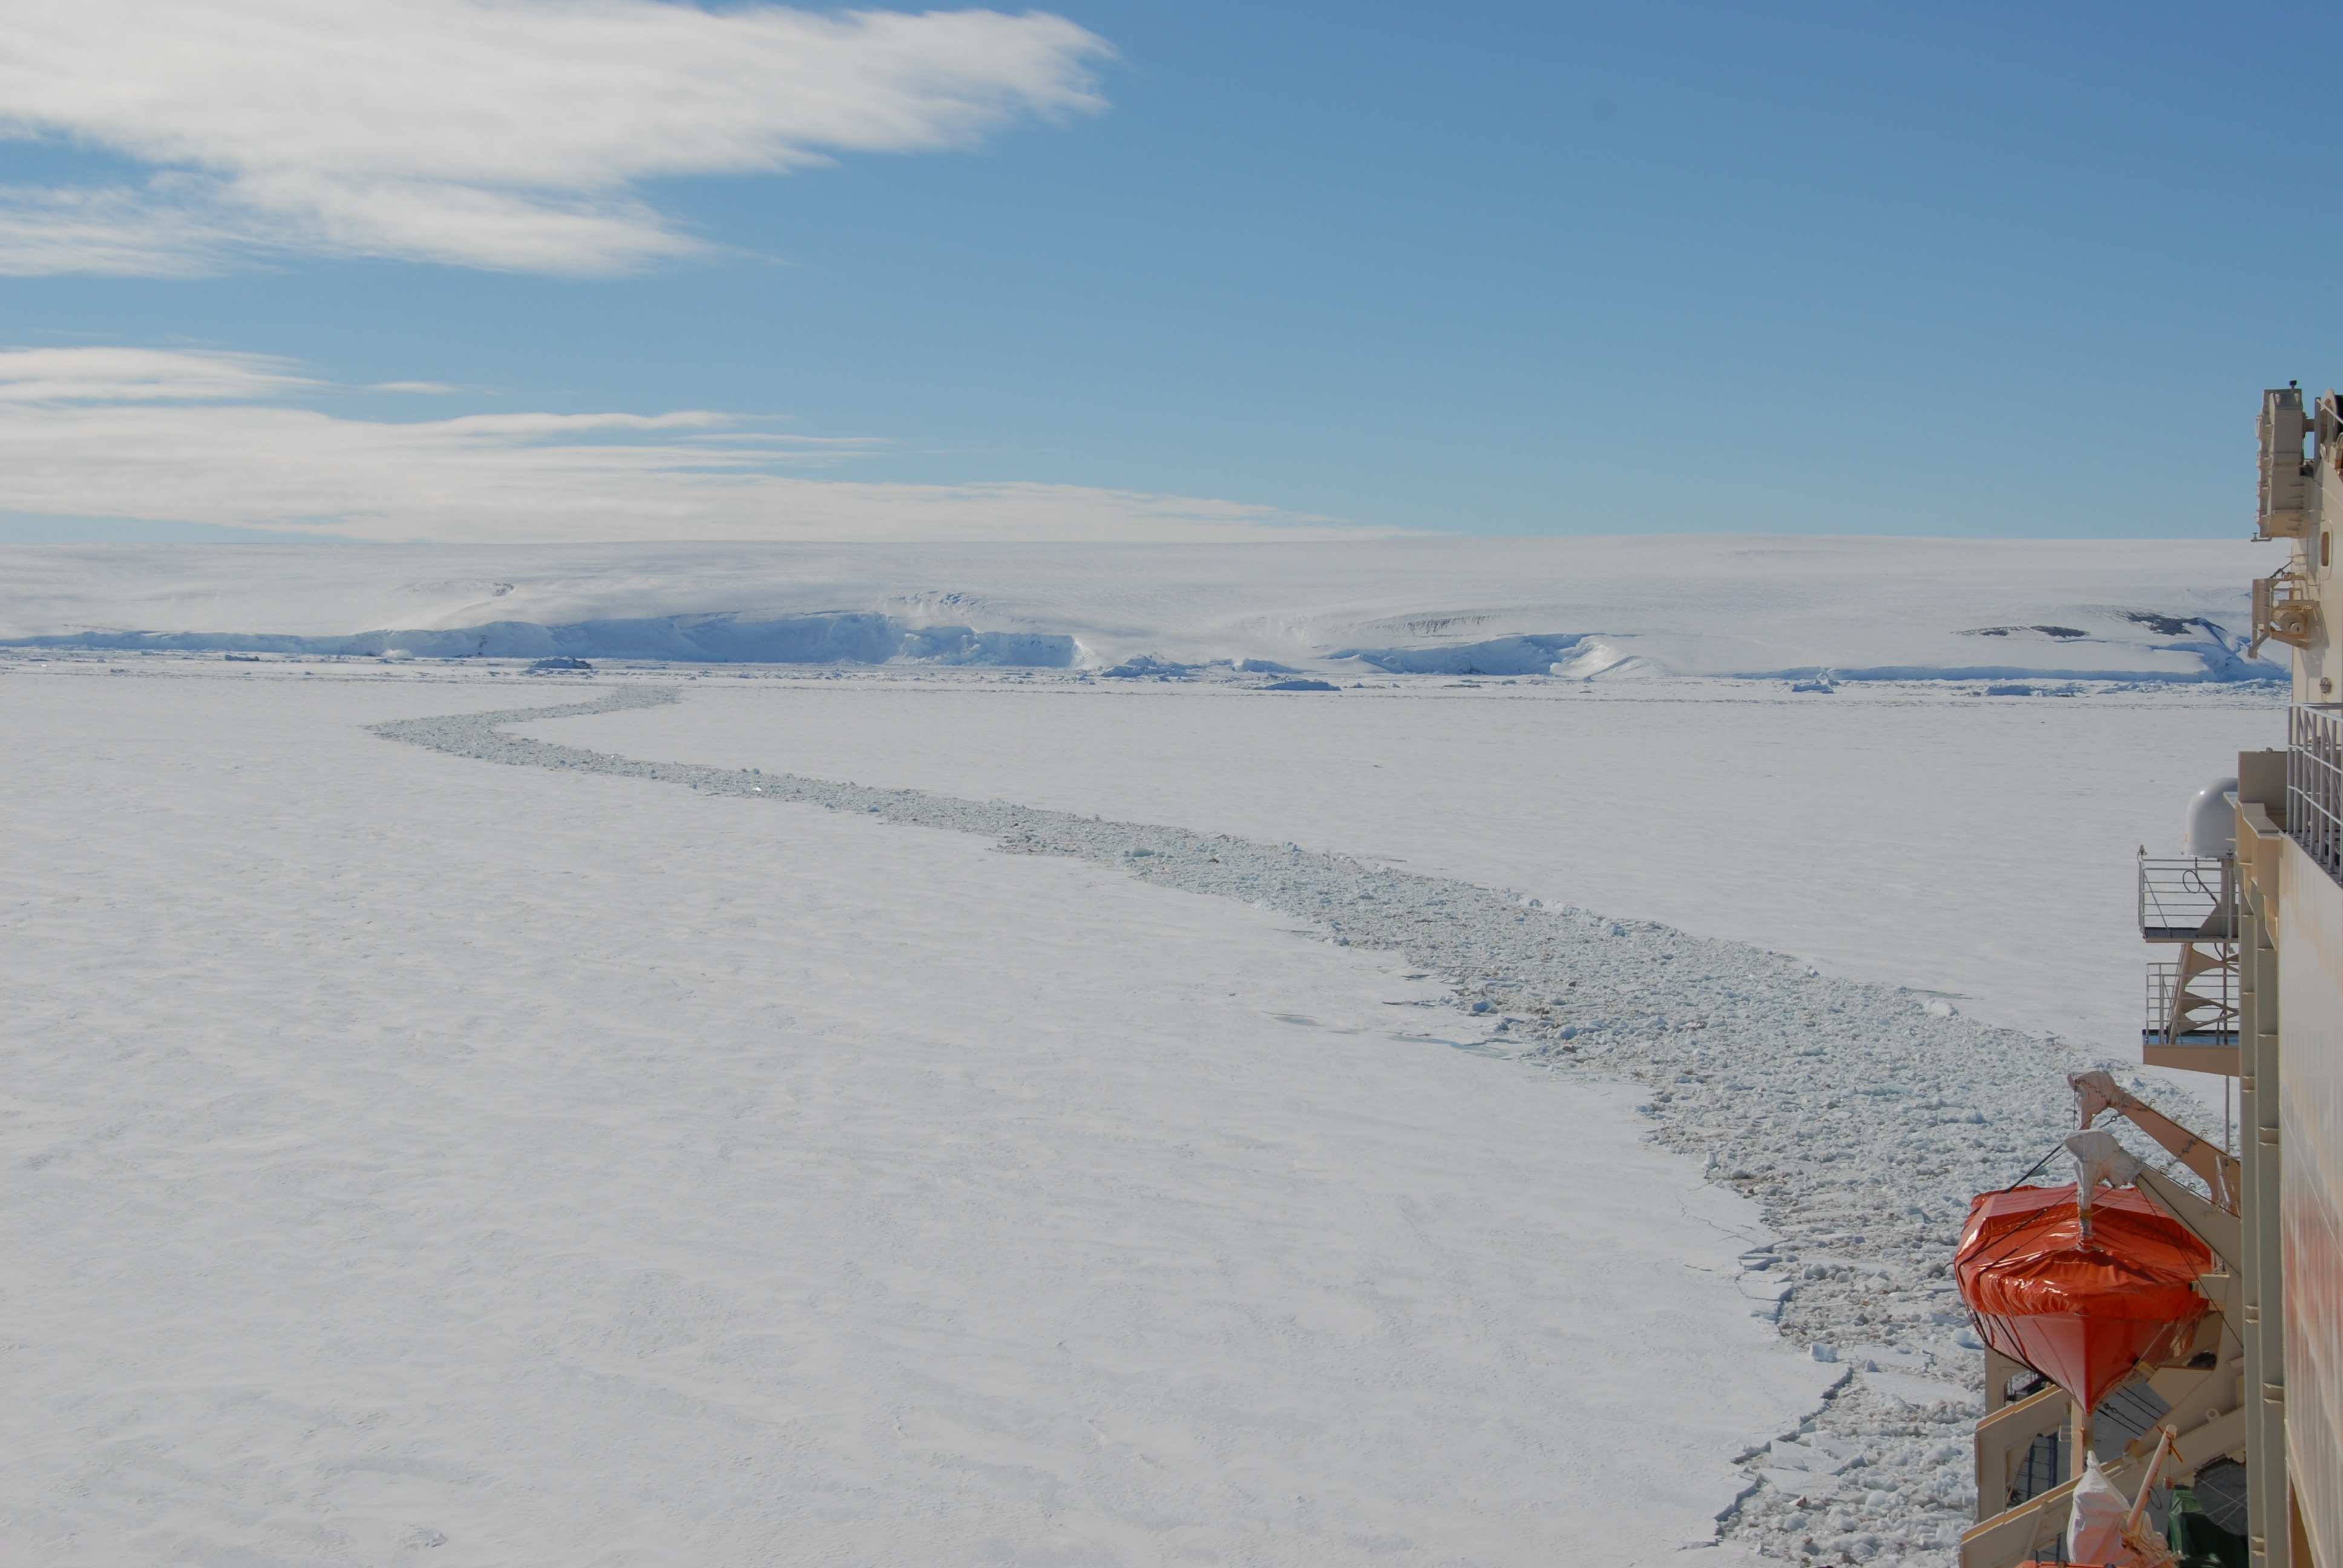 Trail of the Shirase during the 52nd Japanese Antarctic Research Expedition